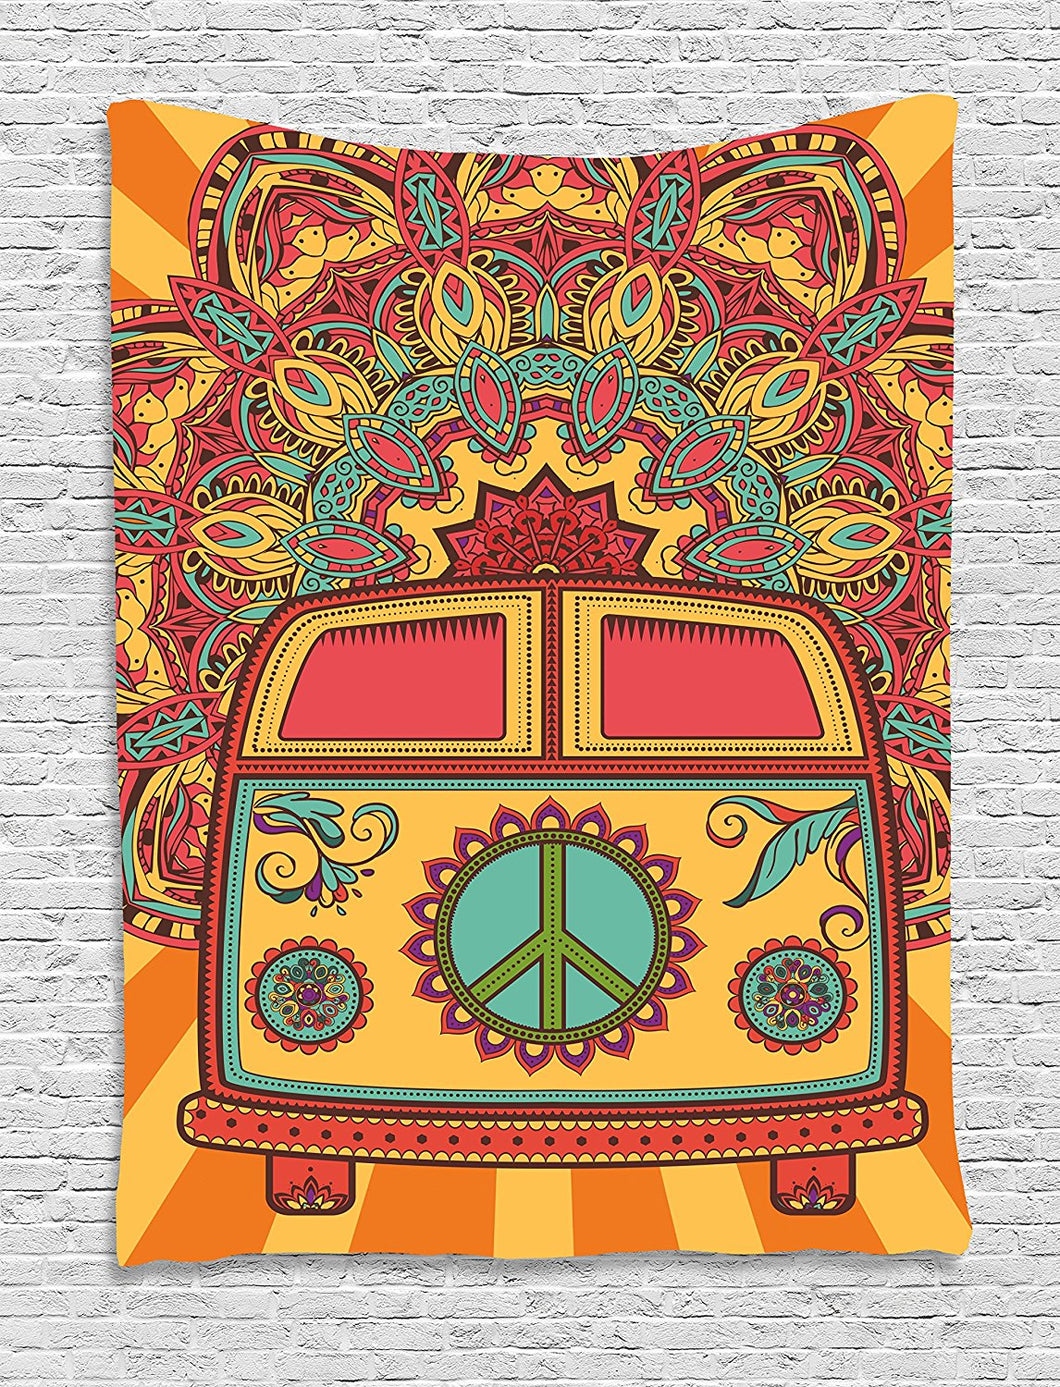 70's Travel Bus Décor Tapestry